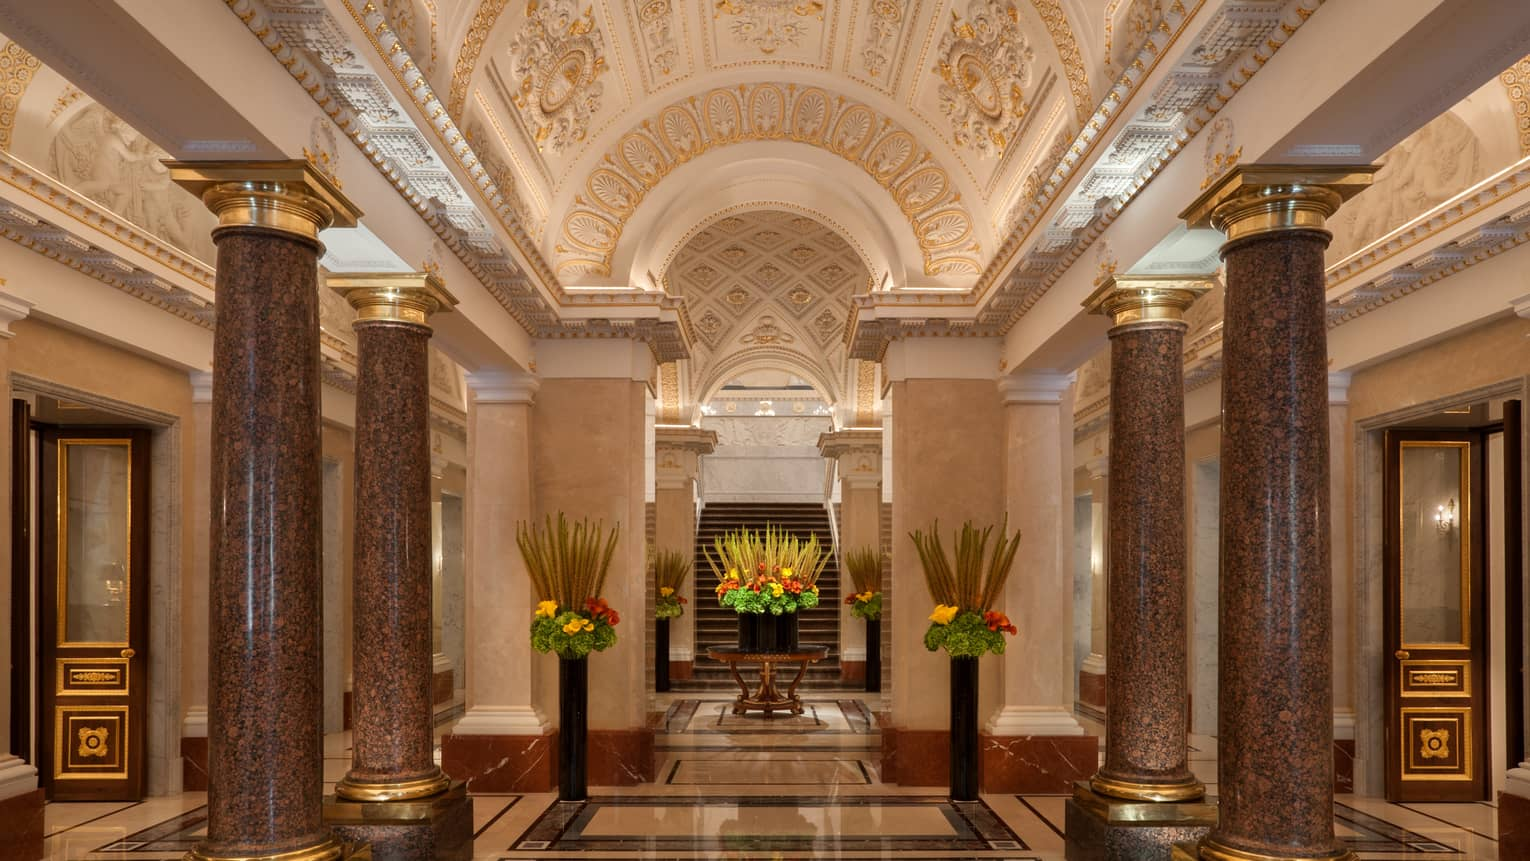 Pillars with gold trim in marble hotel lobby with gilded ceiling, tall vases